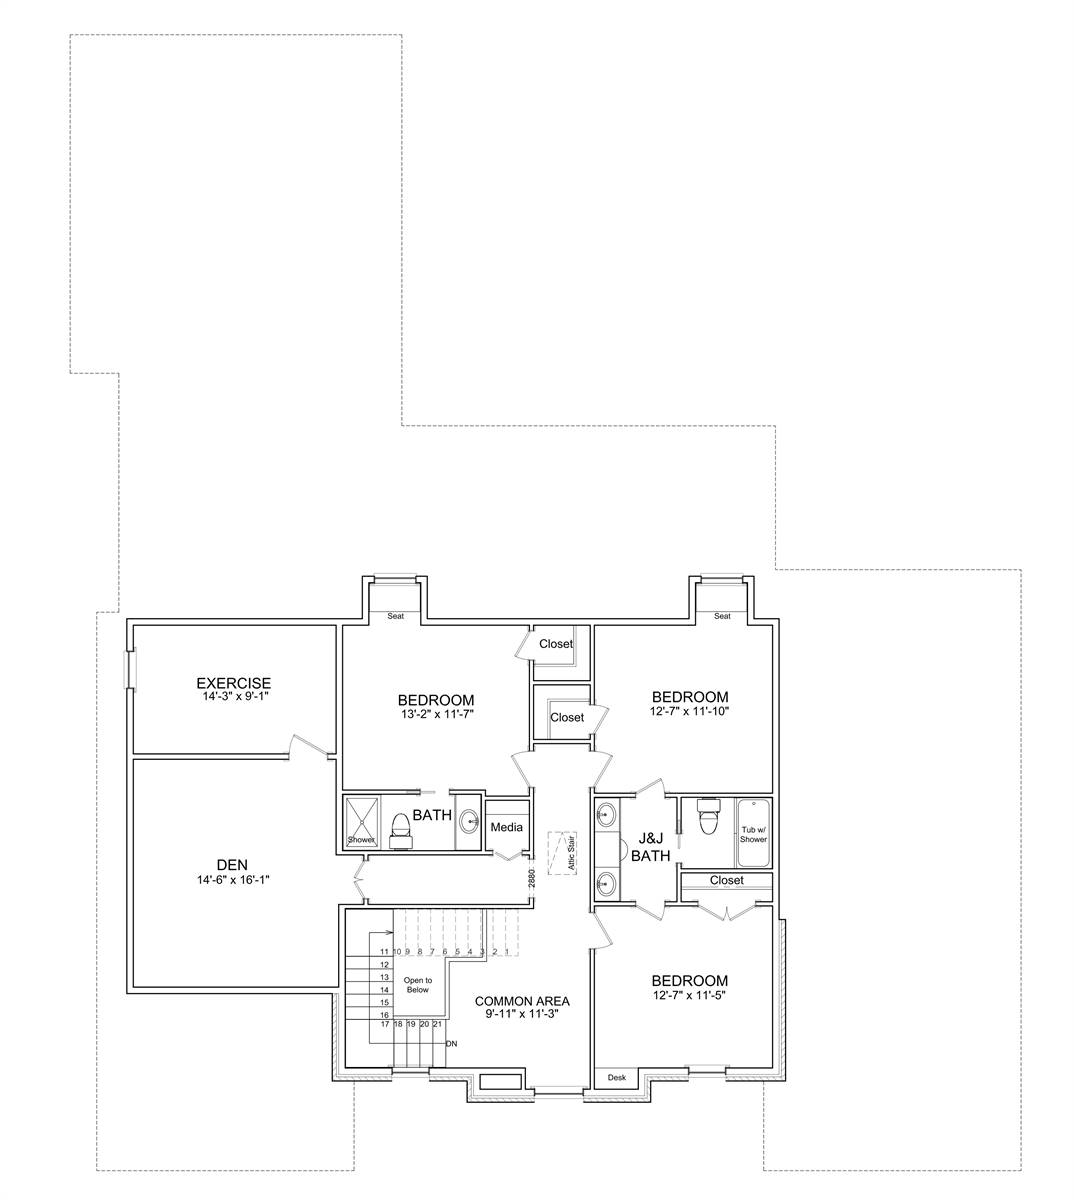 2nd Floor Plan image of Jolie Luxury French Country Style House Plan 7526